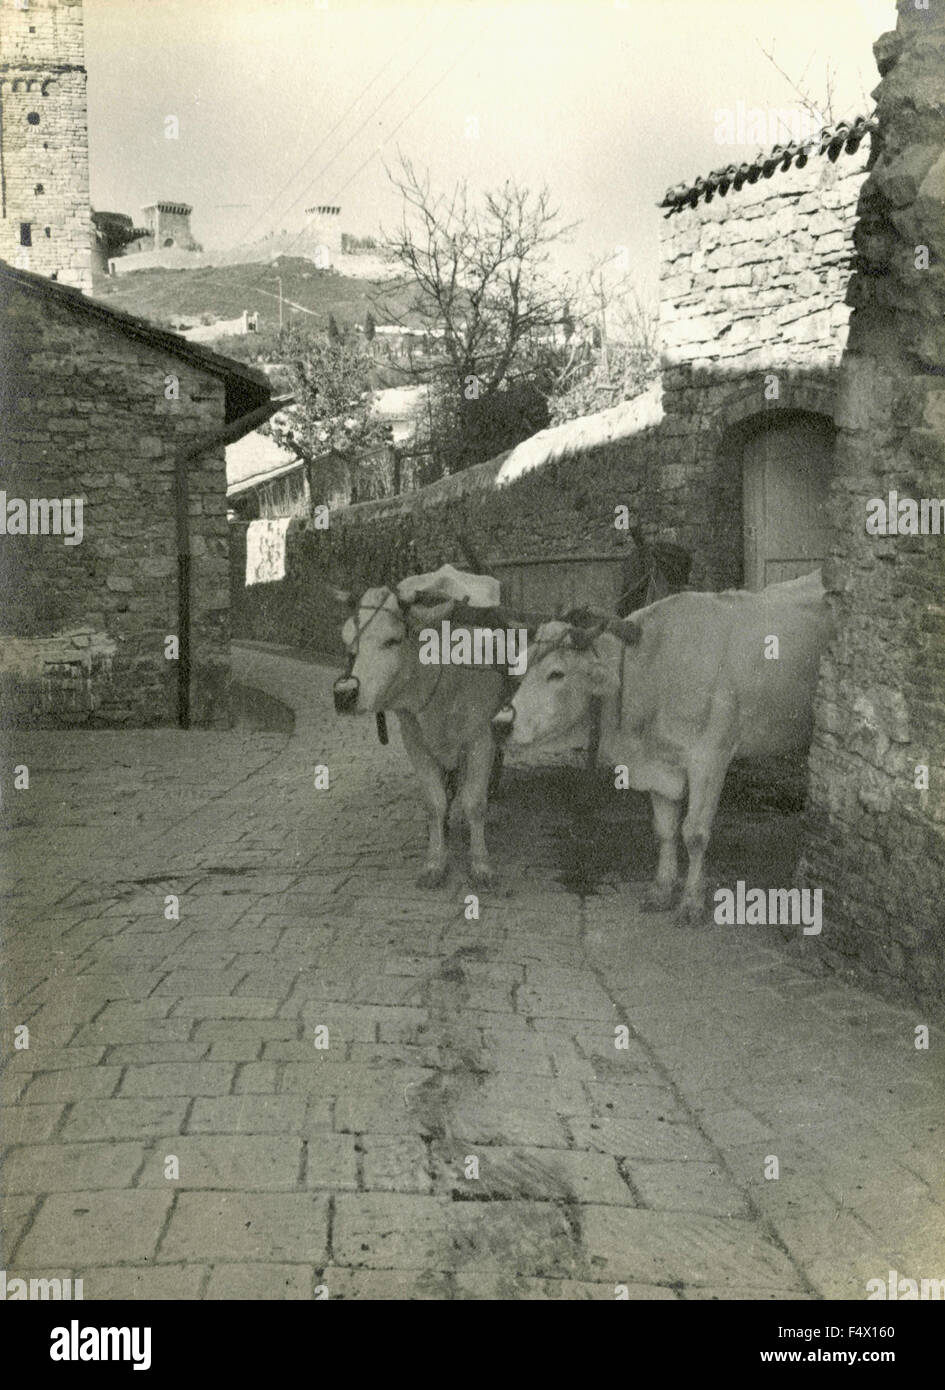 Two oxen attached to a yoke on the streets of the town, Italy - Stock Image